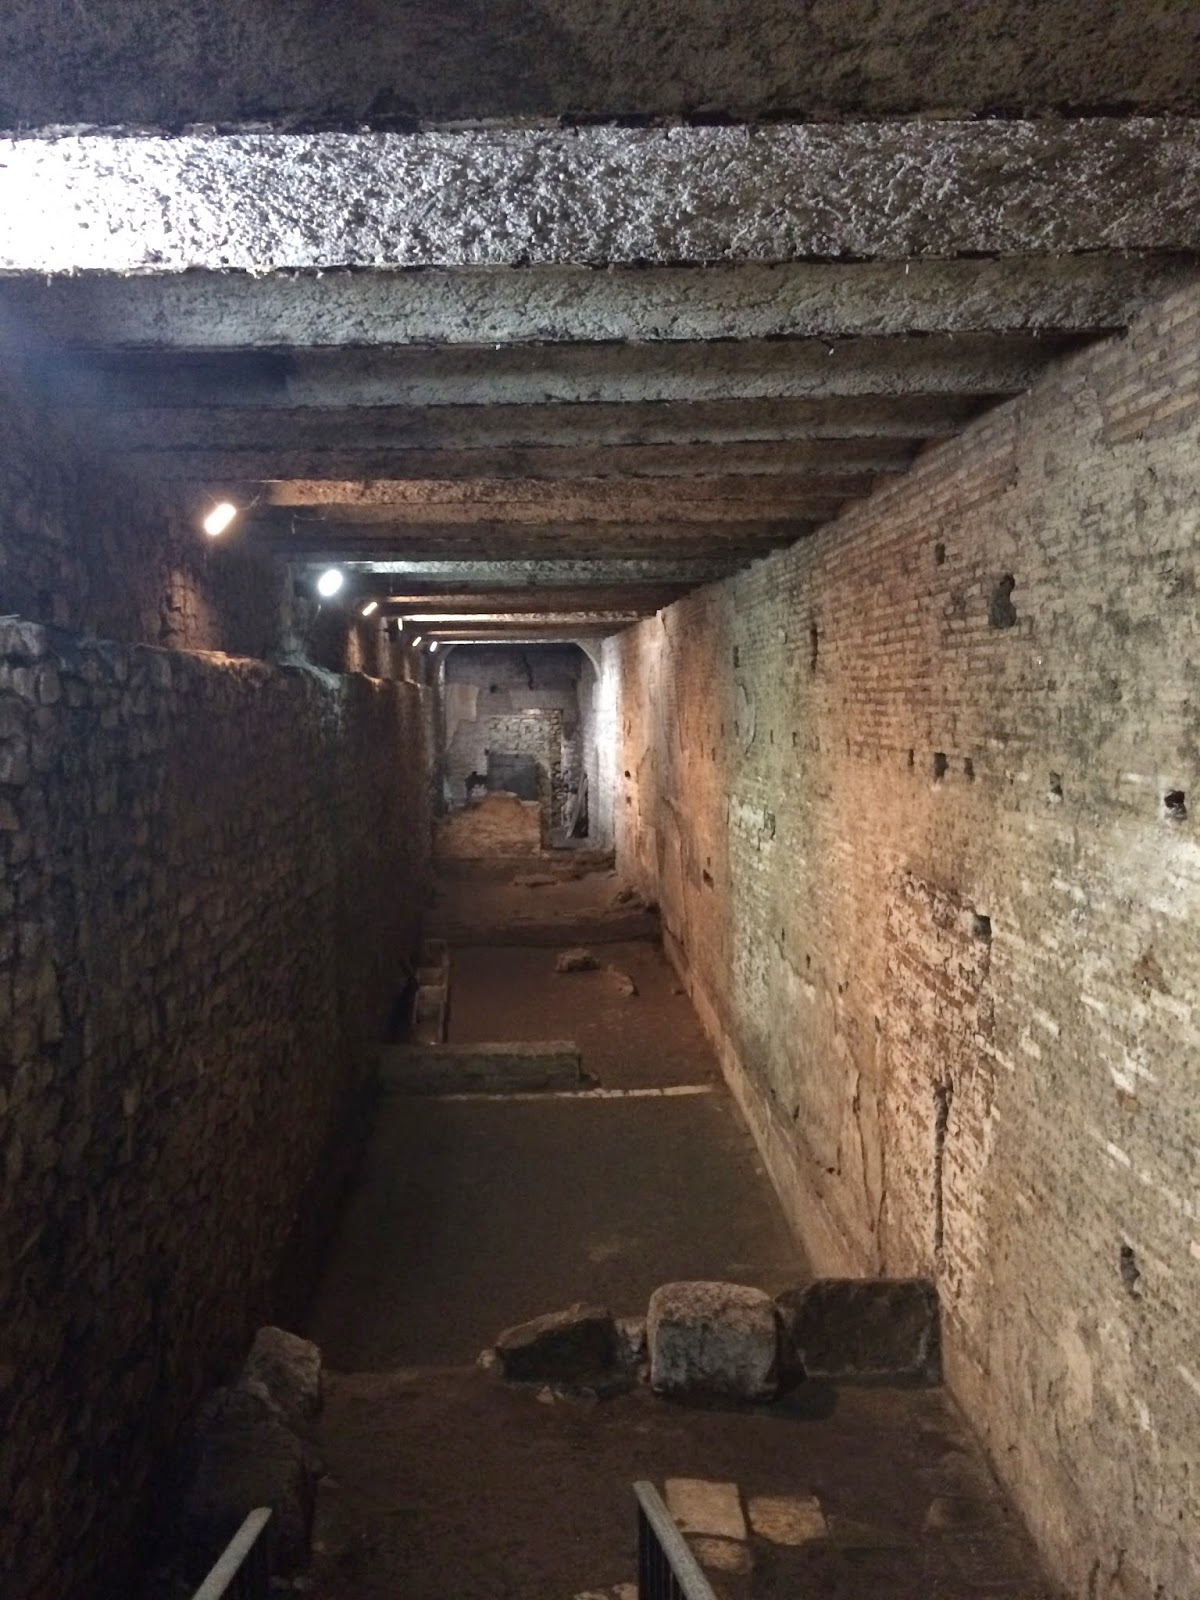 5-Things-I-Adore-About-Rome-Subterranean-Rome